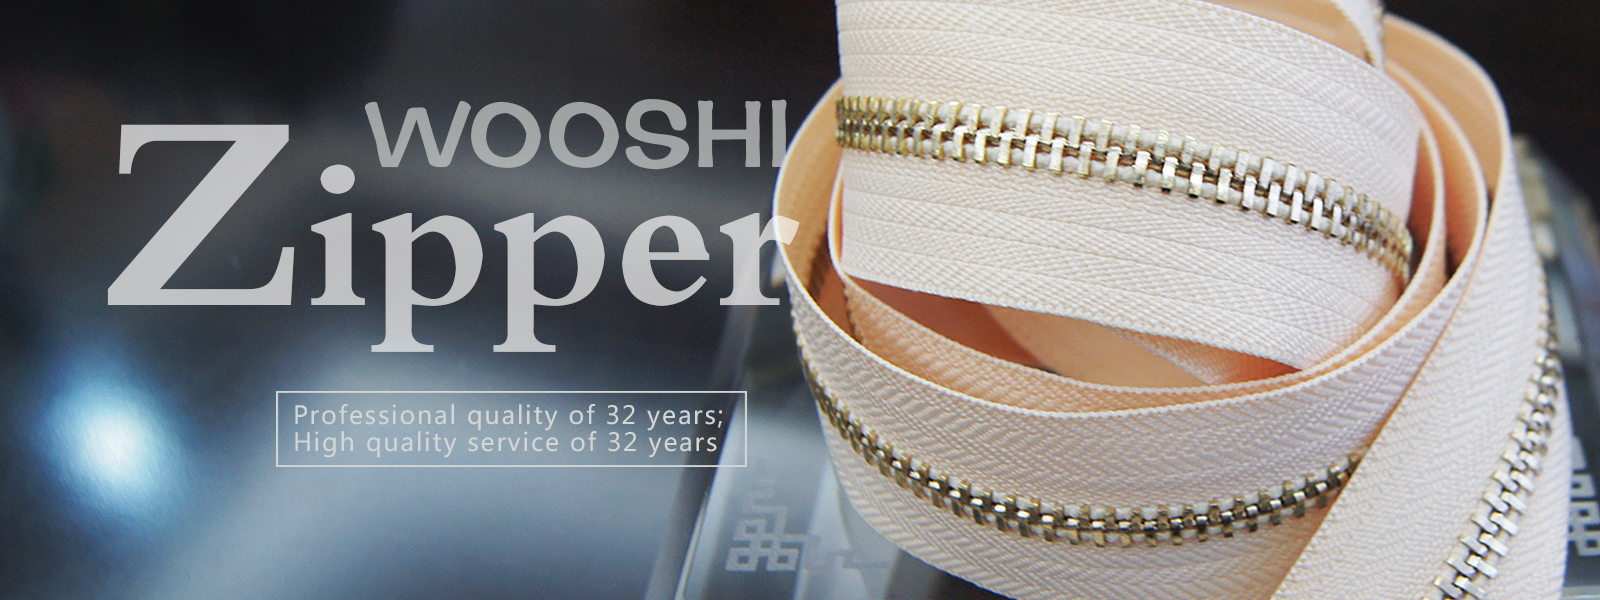 Nylon Zipper Wholesale - Wooshi Zipper